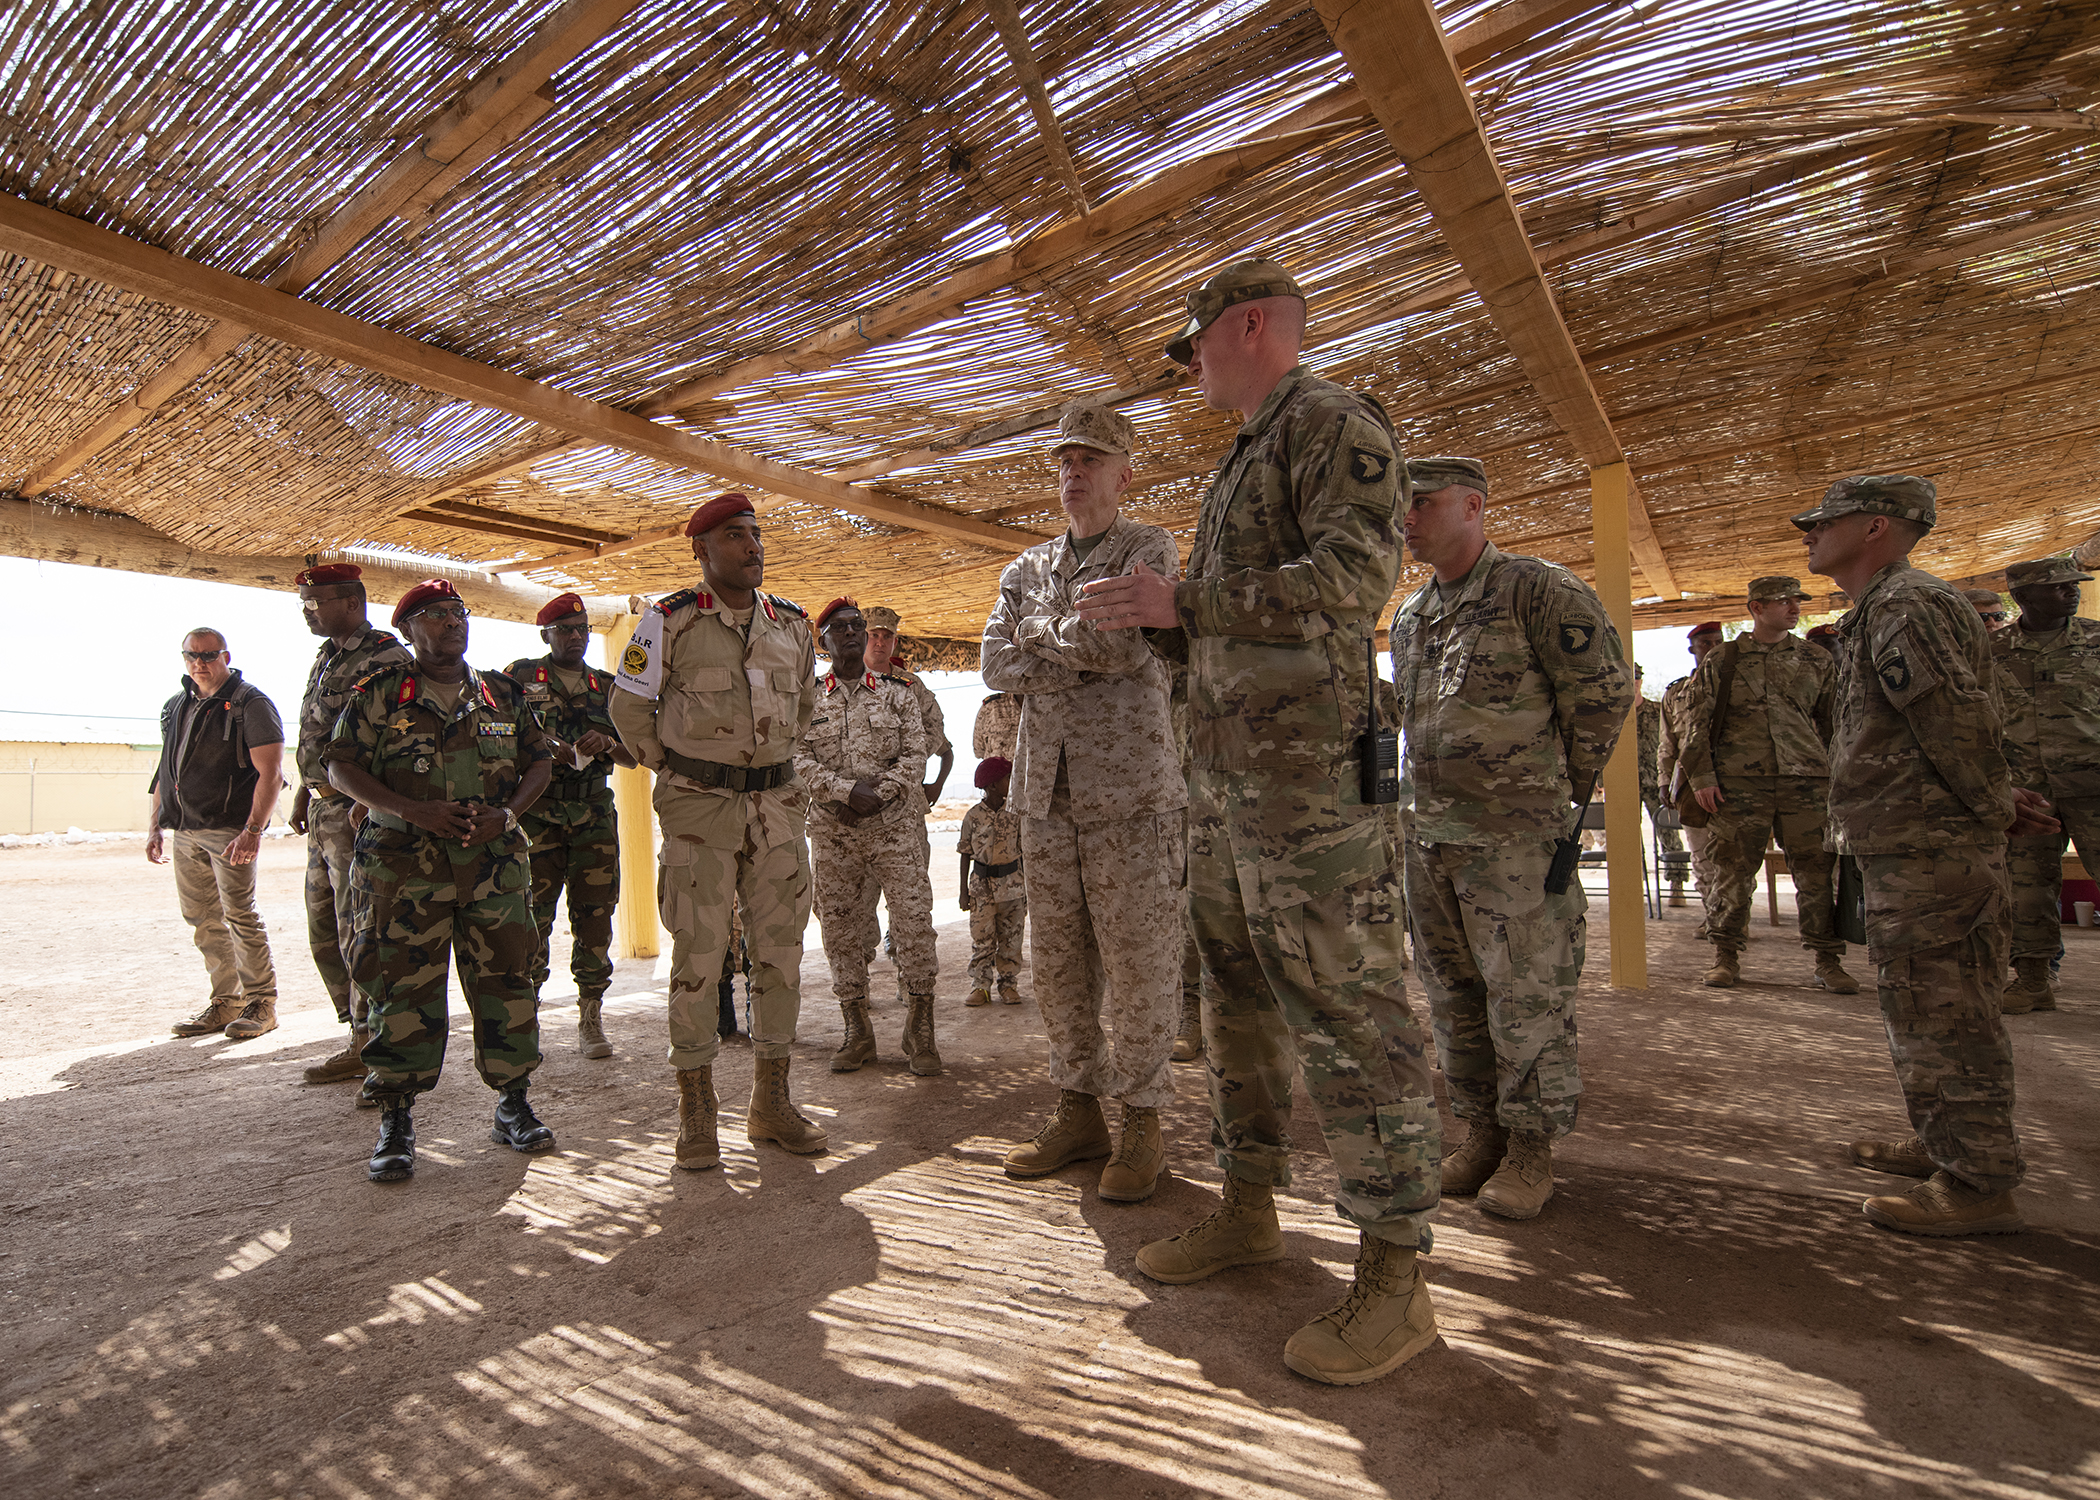 U.S. Marine Corps Gen. Thomas D. Waldhauser, center, commander of U.S. Africa Command, listens to a brief about partner training delivered by the officer in charge of NCO training for the Rapid Intervention Battalion (RIB), U.S. Army 1st Lt. Travis Holihan, Headquarters Company, 1-26 Infantry Battalion, 2nd Brigade Combat Team, 101st Airborne, assigned to Combined Joint Task Force-Horn of Africa, during a visit with senior Djiboutian officials, including Chief of General Staff of the Djibouti Armed Forces Gen. Zakaria Cheikh Ibrahim, at a training base in Djibouti, March 21, 2019. While in Djibouti, Waldhauser observed the ongoing growth and development of the RIB, the Djiboutian army's elite military force, which the U.S. is in the process of training and equipping at the request of the Djiboutian government. (U.S. Air Force photo by Tech. Sgt. Shawn Nickel)